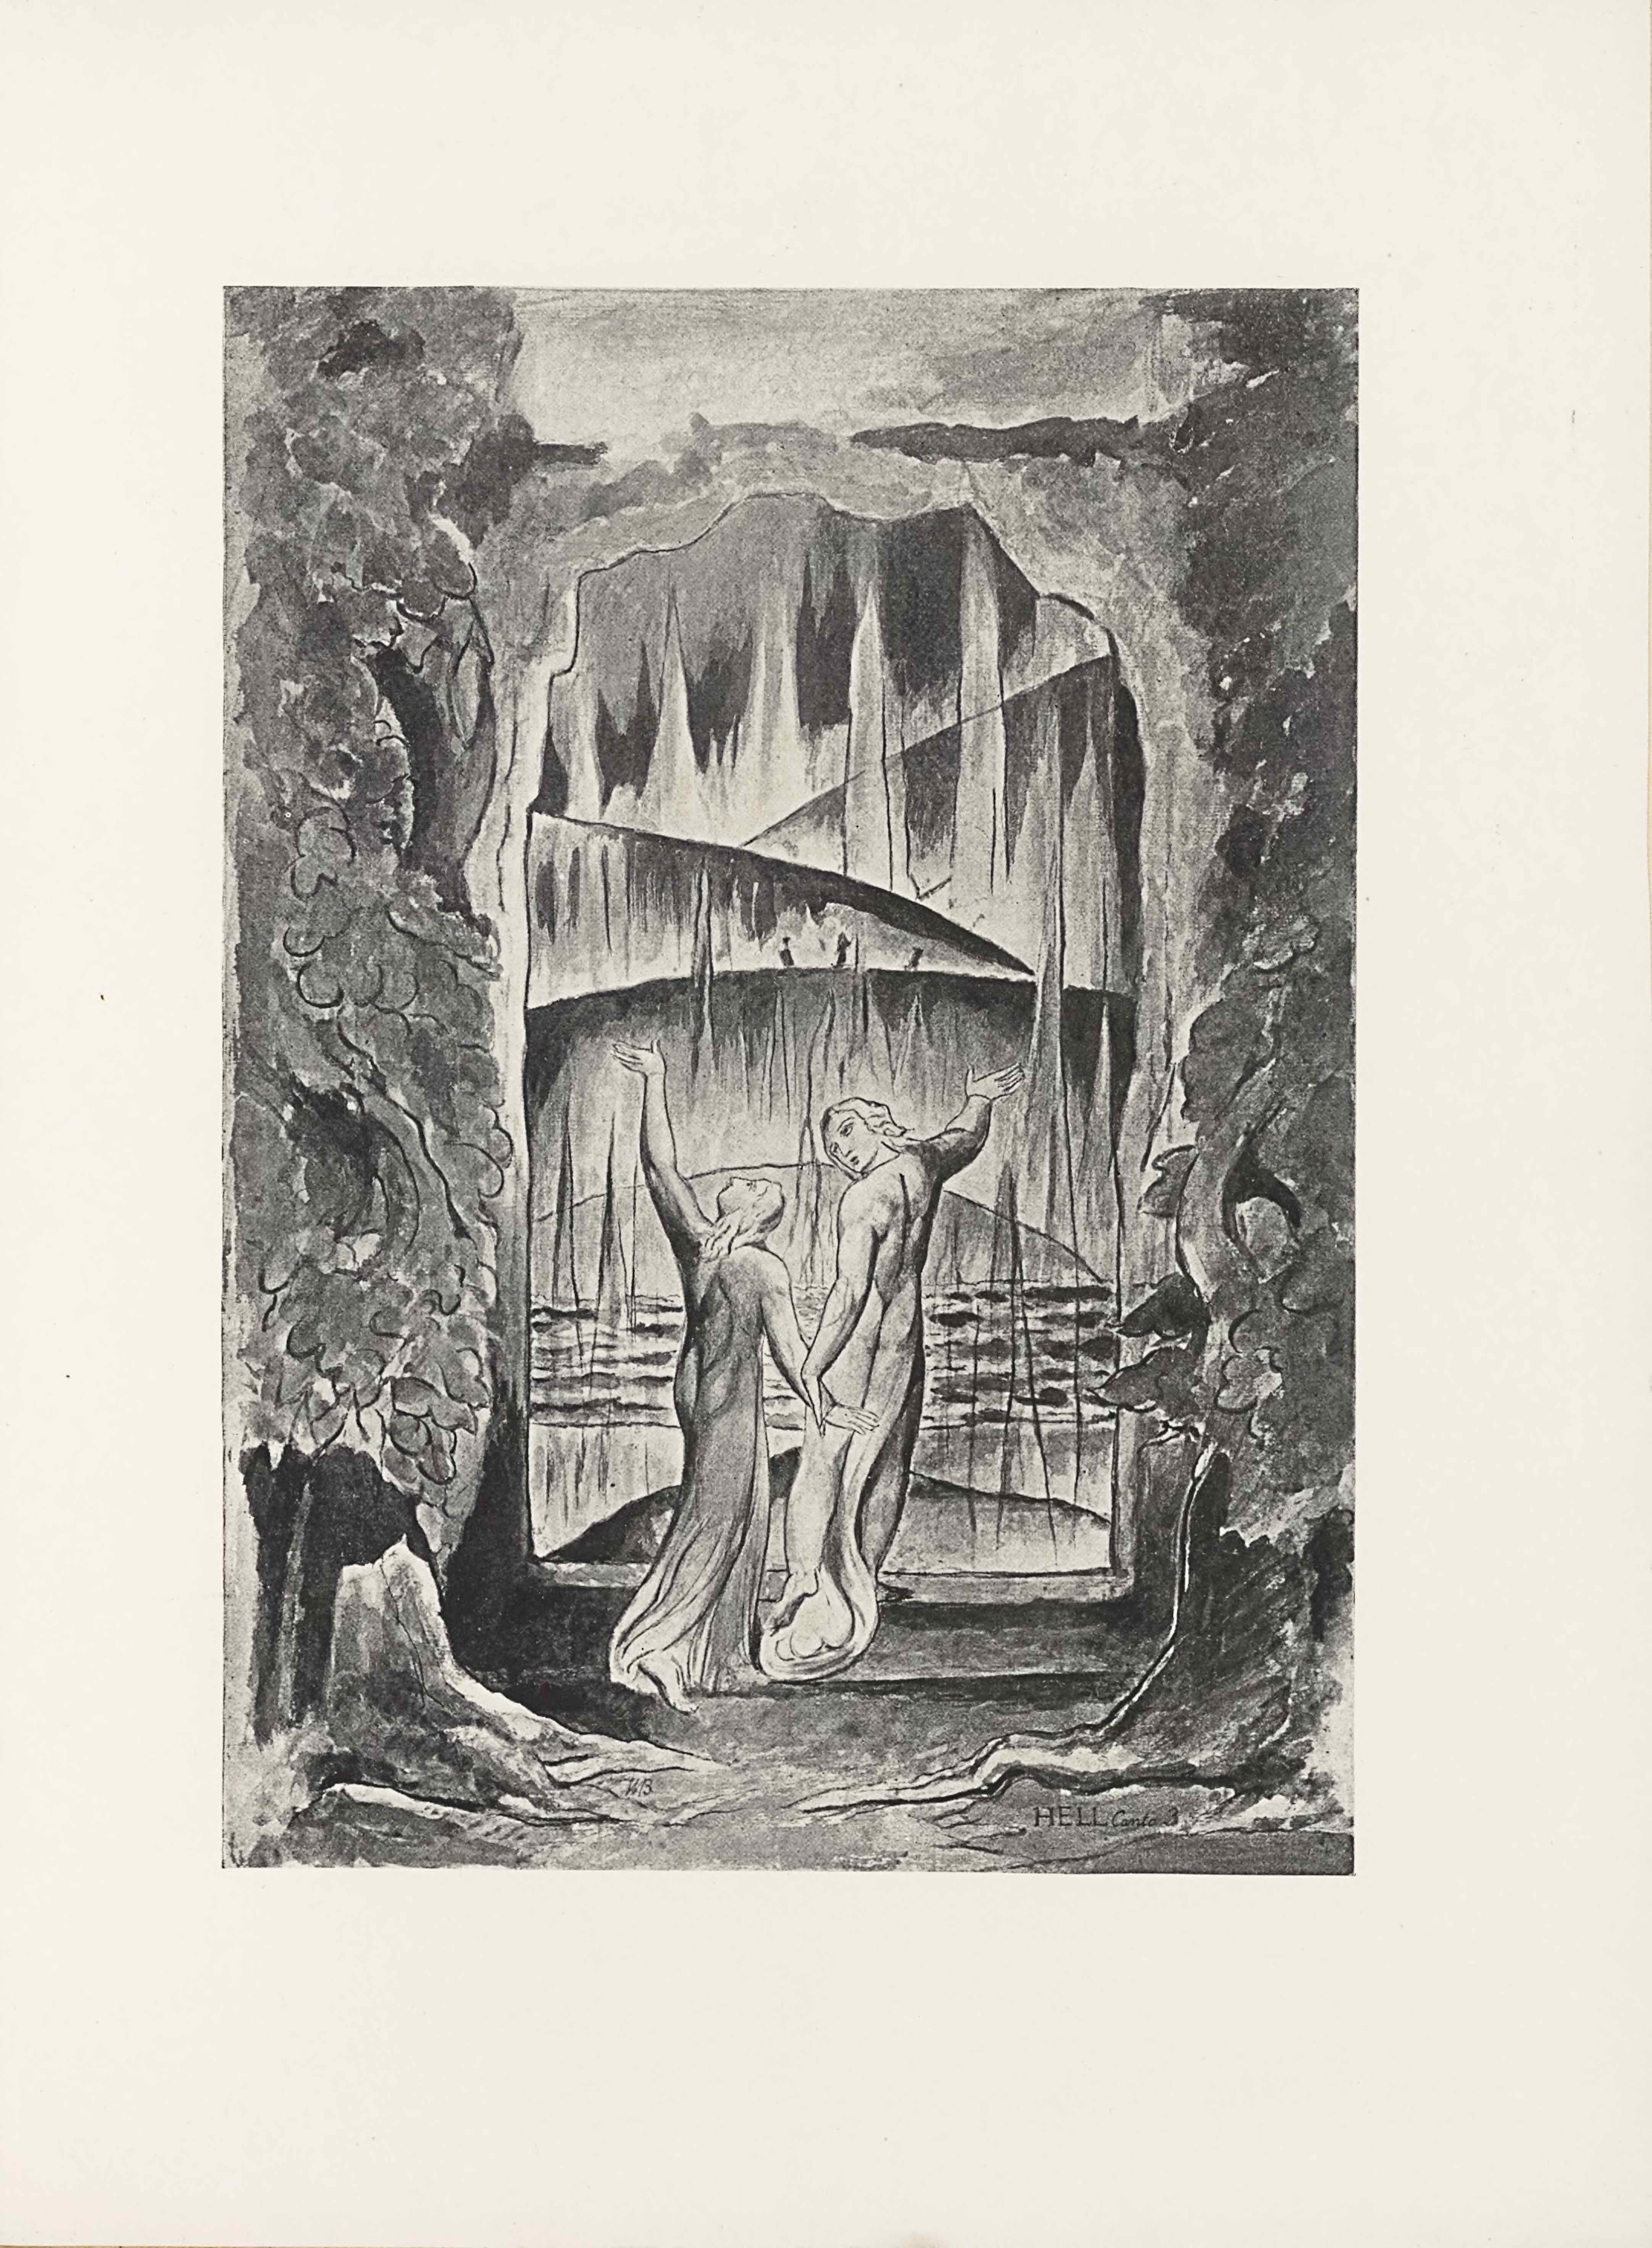 """This halftone reproduction of a water-colour drawing by William Blake illustrating Dante's Inferno appears in portrait orientation. The image shows two central figures with their back to the viewer standing at the gate [""""portico""""] of hell and about to enter. On either side of the portal is a tall tree with leaves swirling around the trunk, extending the entire height of the image.. The mirroring trees have roots that creep towards each other toward the centre bottom of the image. The two lightly robed figures [the poets Dante and Virgil] stand in front of these roots, on a threshold that leads into a vision of hell. The figure on the left is standing with his left arm lifted straight up and palm turned up to the sky. He is in mid-step, with his right leg lagging slightly behind and lifted as if it were about to step forwards. His face is turned to look up at his left hand, and his light-coloured hair falls down his back. His right arm is extended down and slightly to his right, reaching towards the other figure. The other figure mirrors the first in having the outside arm, this time their right arm, extended up and out to the side. This figure has shorter hair, and has their face turned toward the other figure, giving the viewer a three-quarters profile. Both figures are wearing a transparent veil of material surrounding their legs and draping around their feet. Through the threshold of the gates of hell there is a path, a sea, and a series of five layers of hills and jagged triangular shapes. The hills are shaded in an ombre effect, going from dark at the top edge to light near the bottom. There appears three roughly sketched figures atop the second hill from the front. Across the surface of the portal appears various random streaks of shading. In the small section above the portal is the open sky. In the bottom right corner of the page appears the text: """"HELL [caps] Canto 3"""" [citing Dante's Inferno]."""